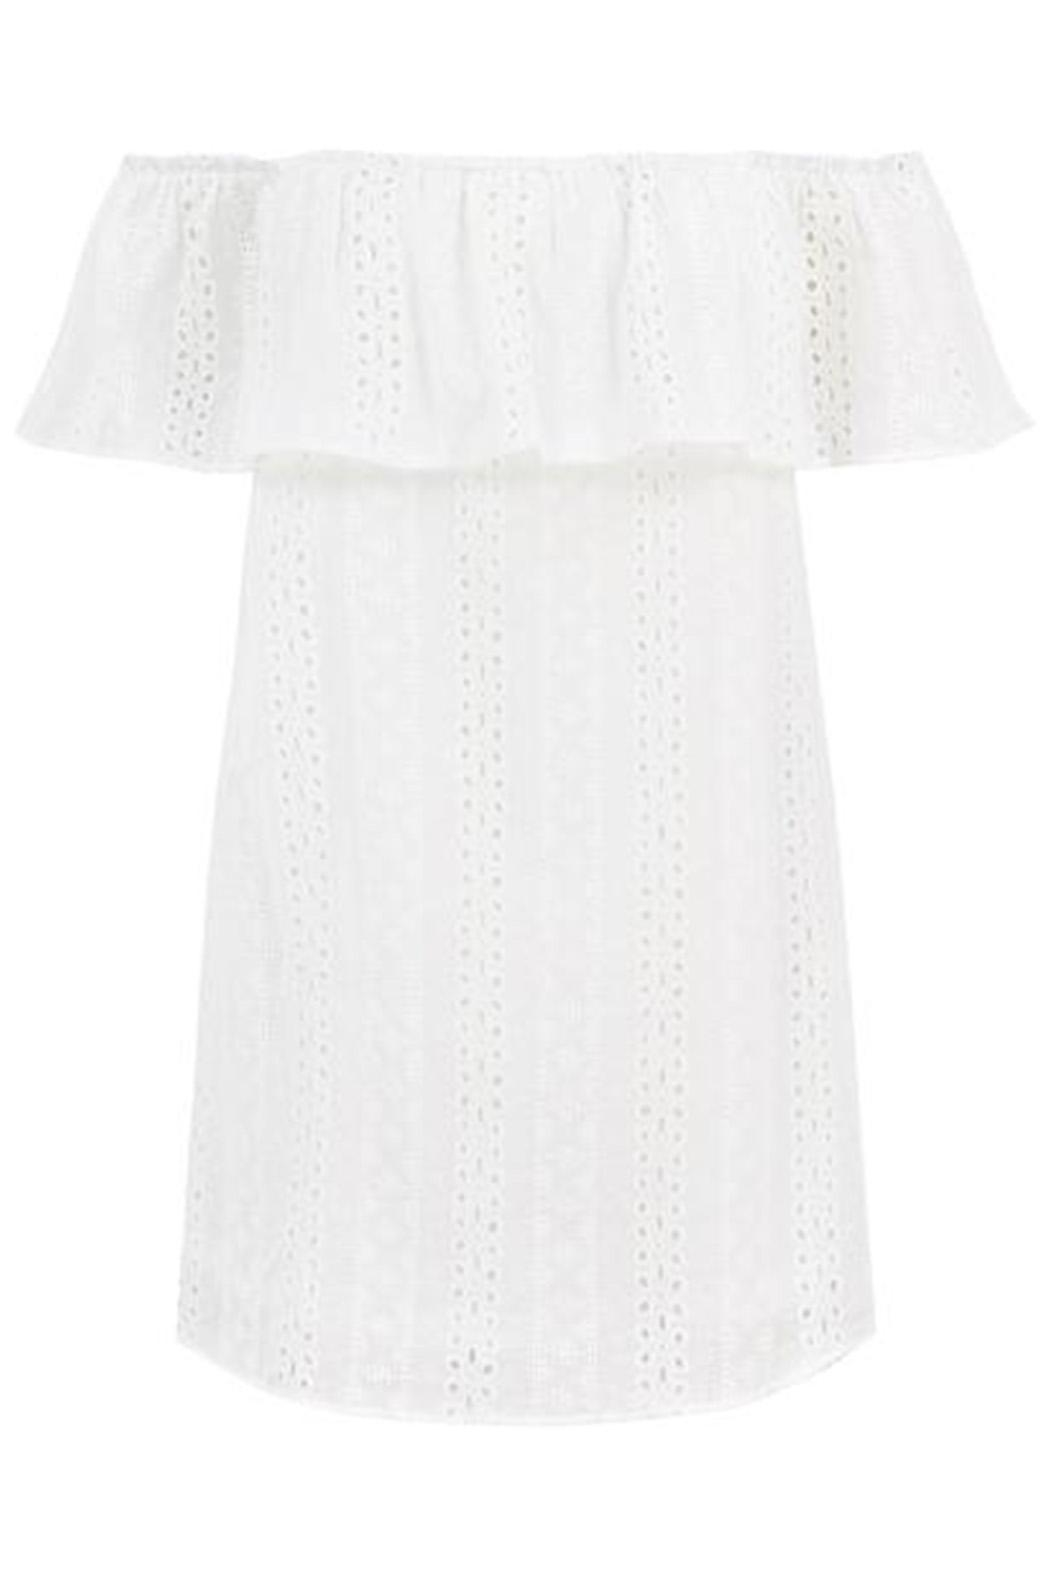 Bishop + Young Eyelet Dress - Front Cropped Image